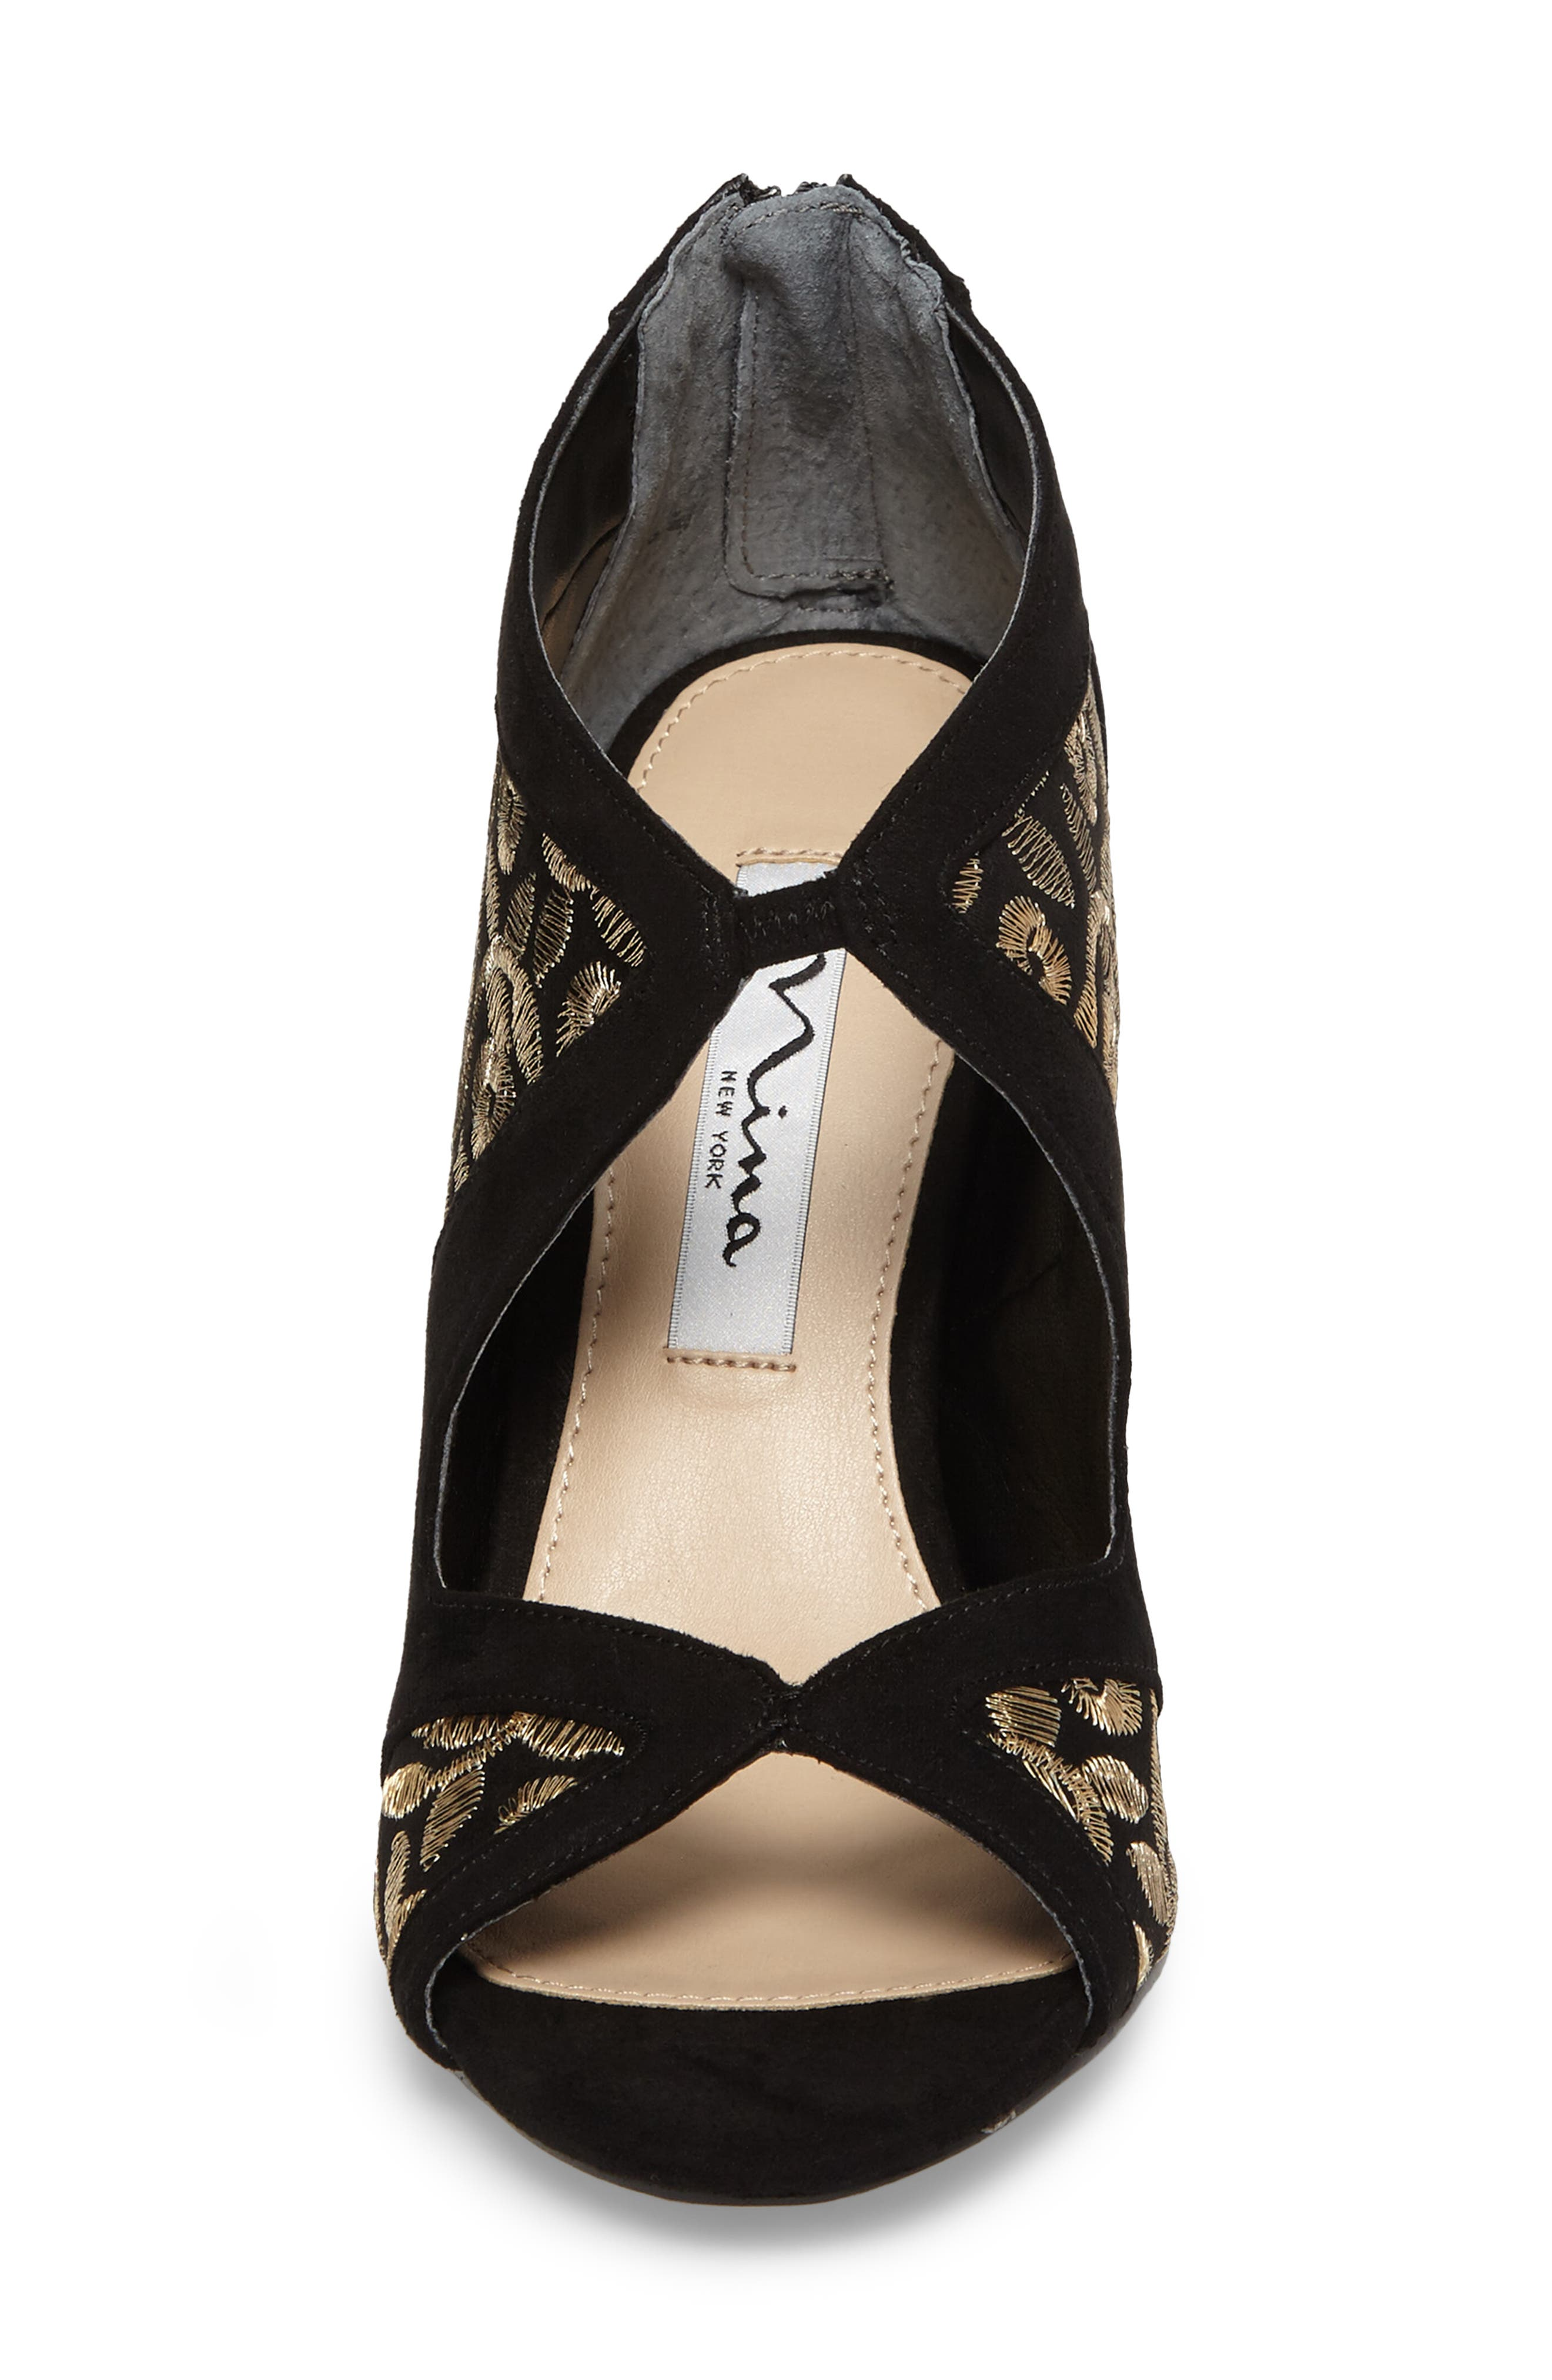 Cordella Open Toe Pump,                             Alternate thumbnail 4, color,                             Black/ Gold Embroidery Fabric